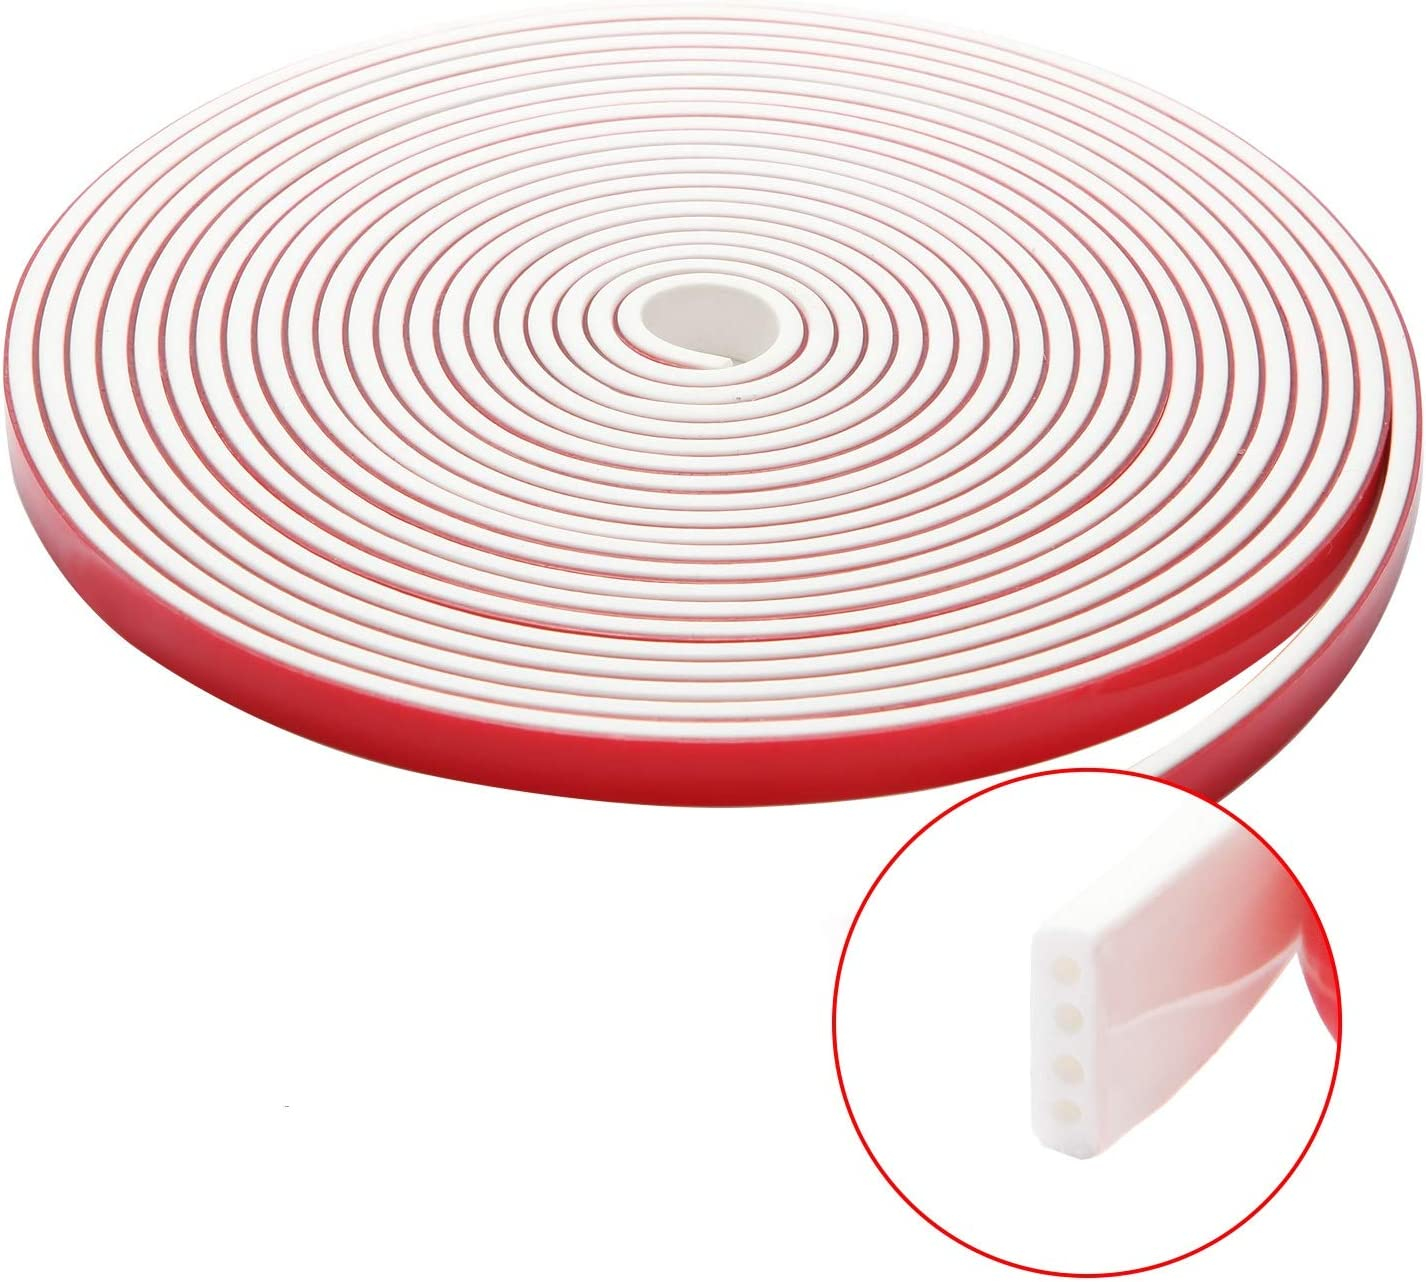 Silicone Rubber Sealing Strip Seal Multi functional Dustproof Soundproof